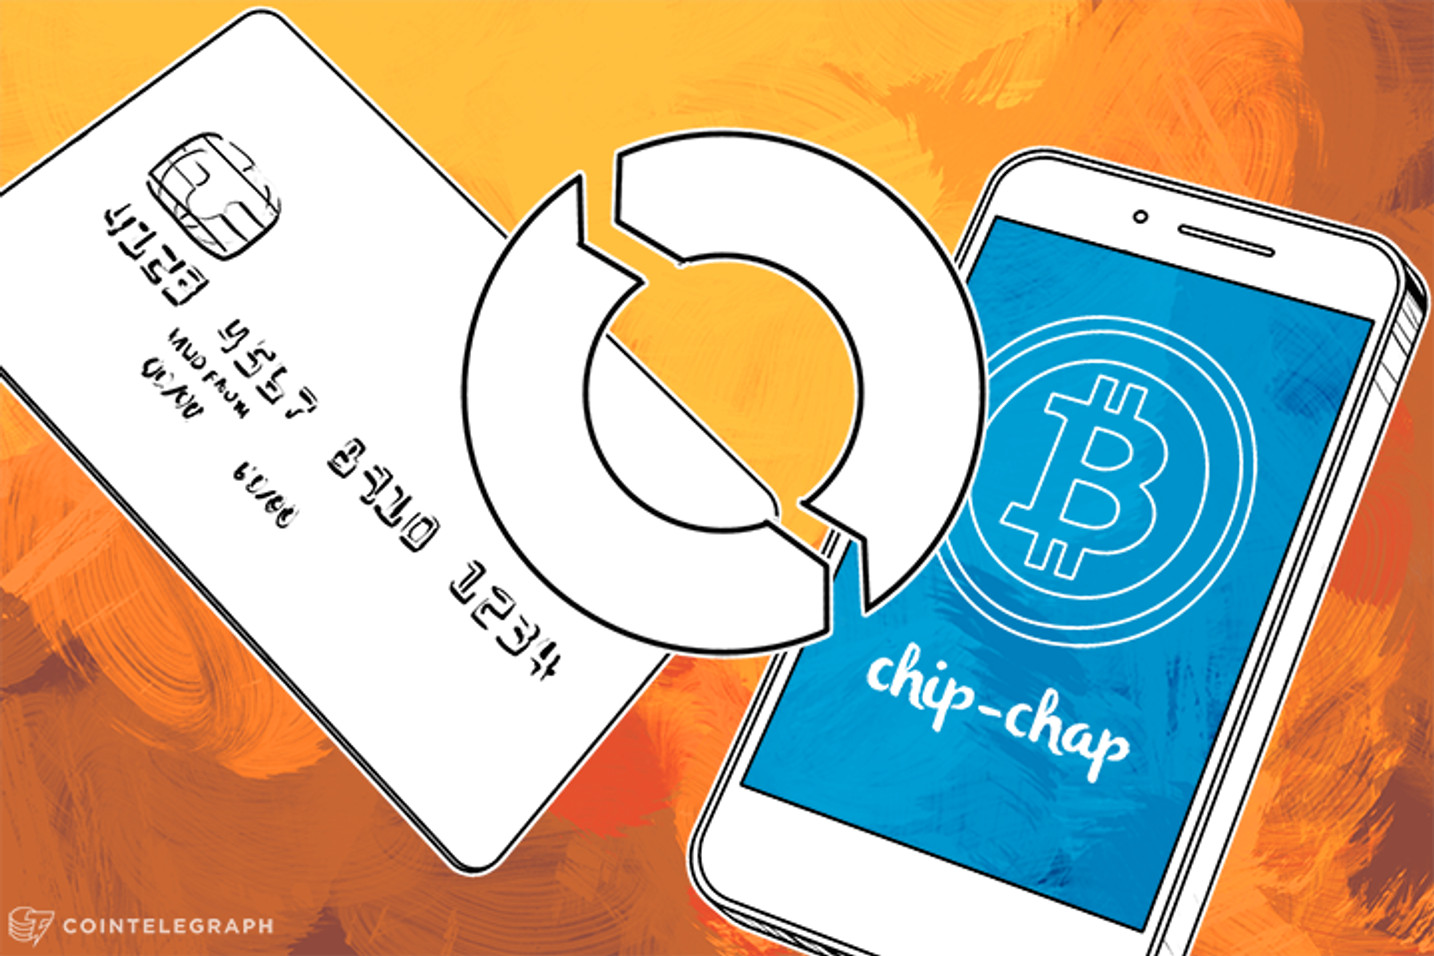 Buy Bitcoin with a Credit Card Worldwide with Chip Chap